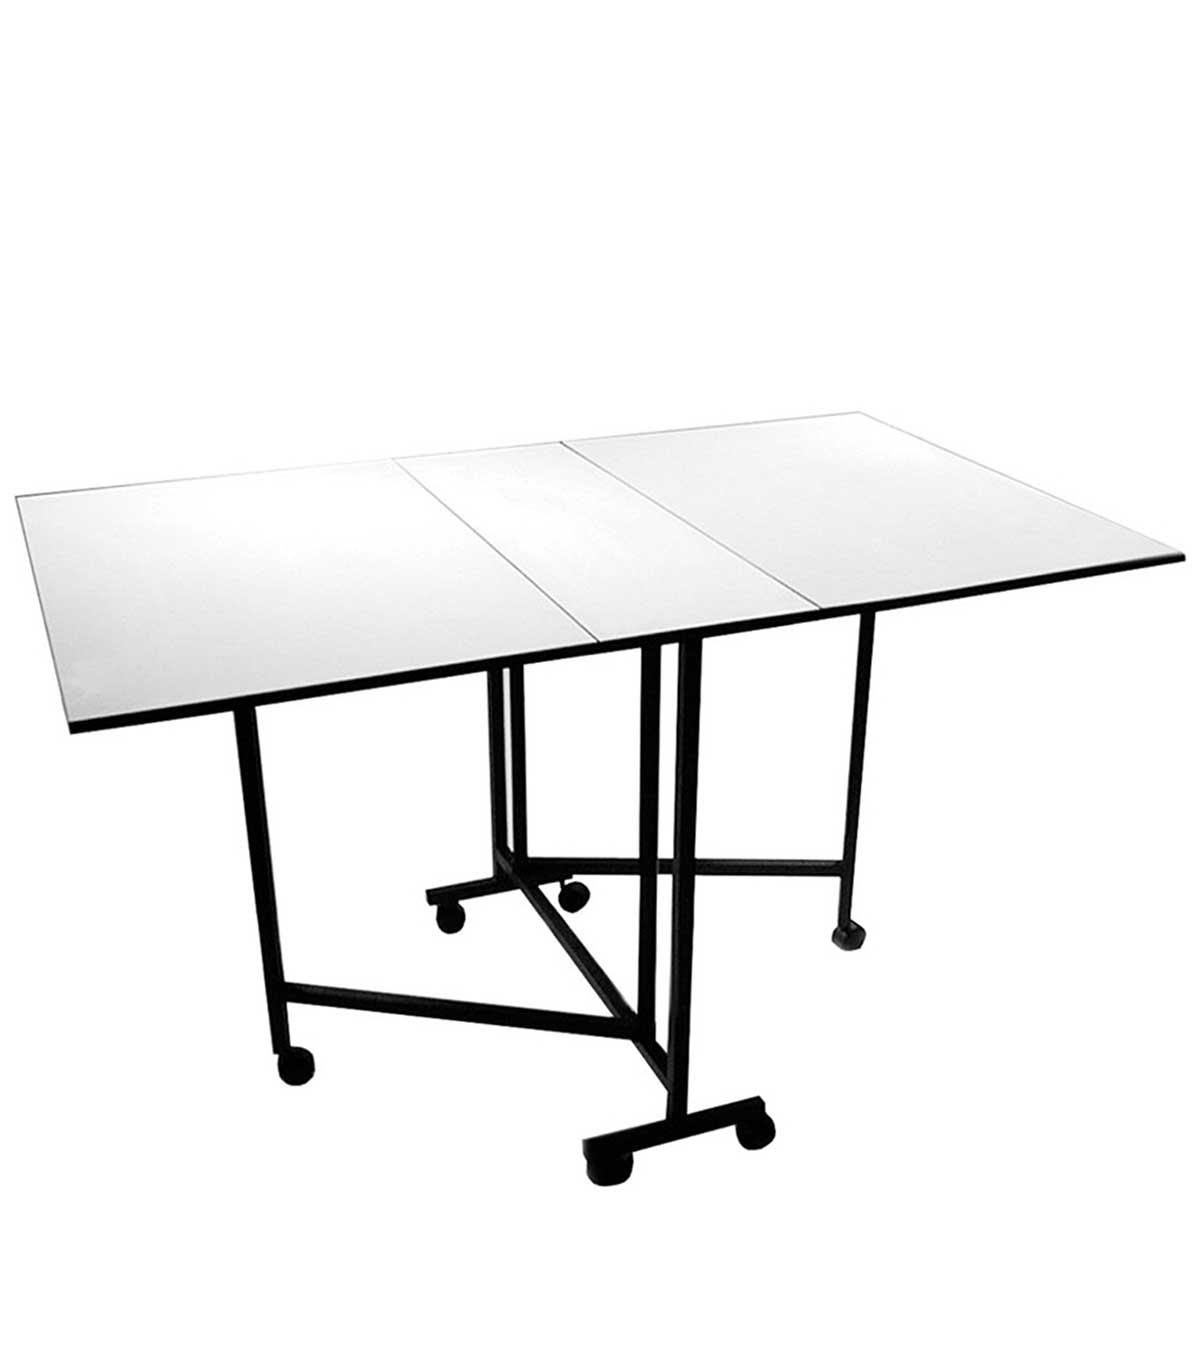 Sullivans Home Hobby Table    Sullivans Home Hobby Table by Sullivans